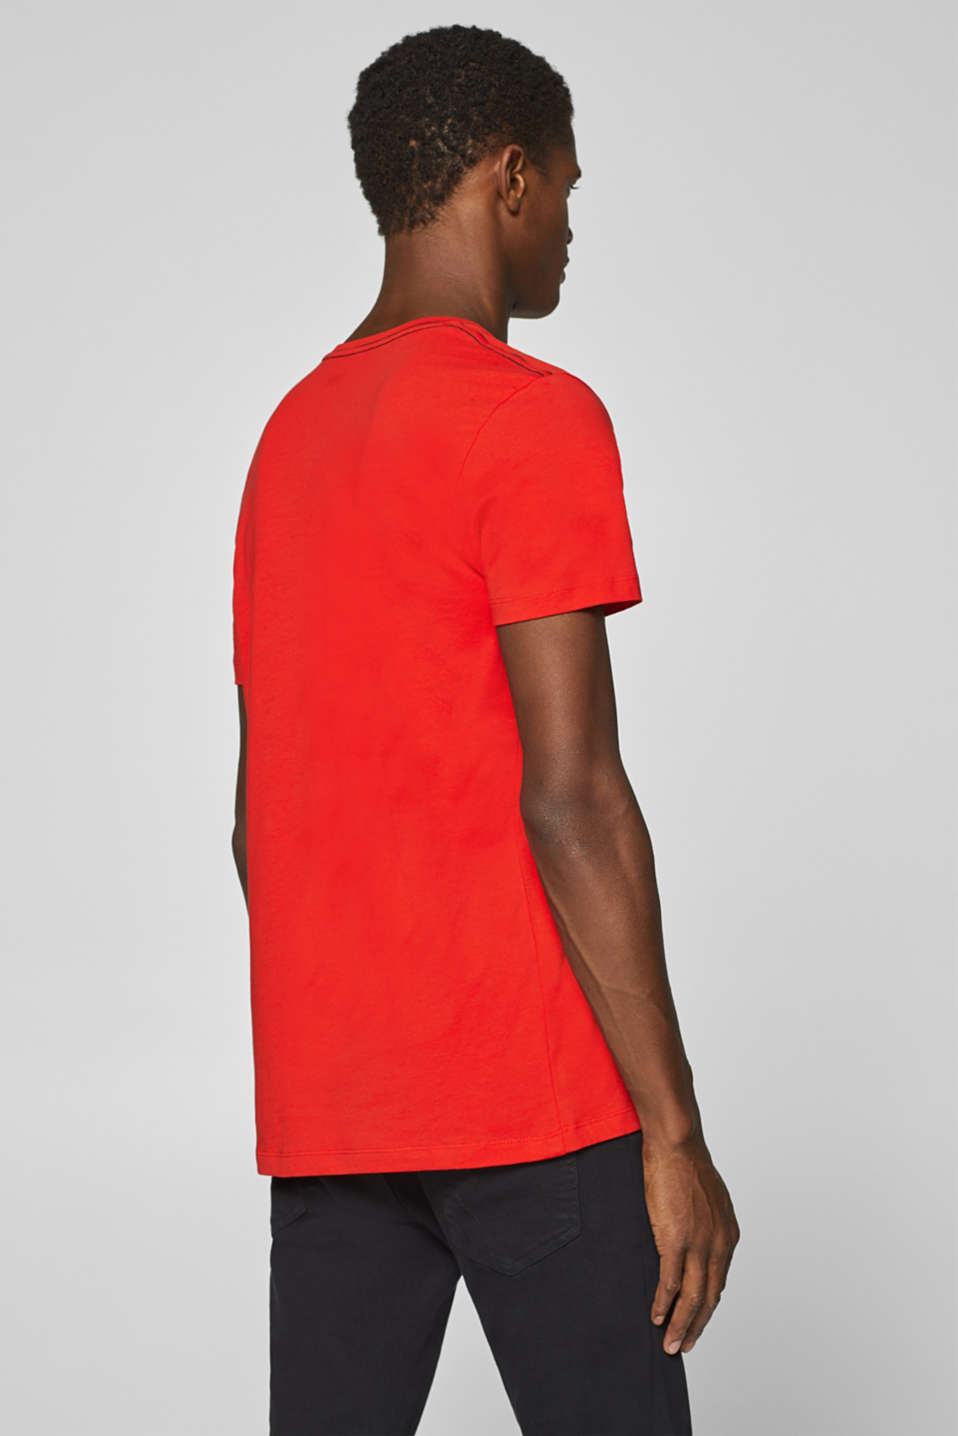 Jersey T-shirt with logo print, 100% cotton, ORANGE RED, detail image number 3